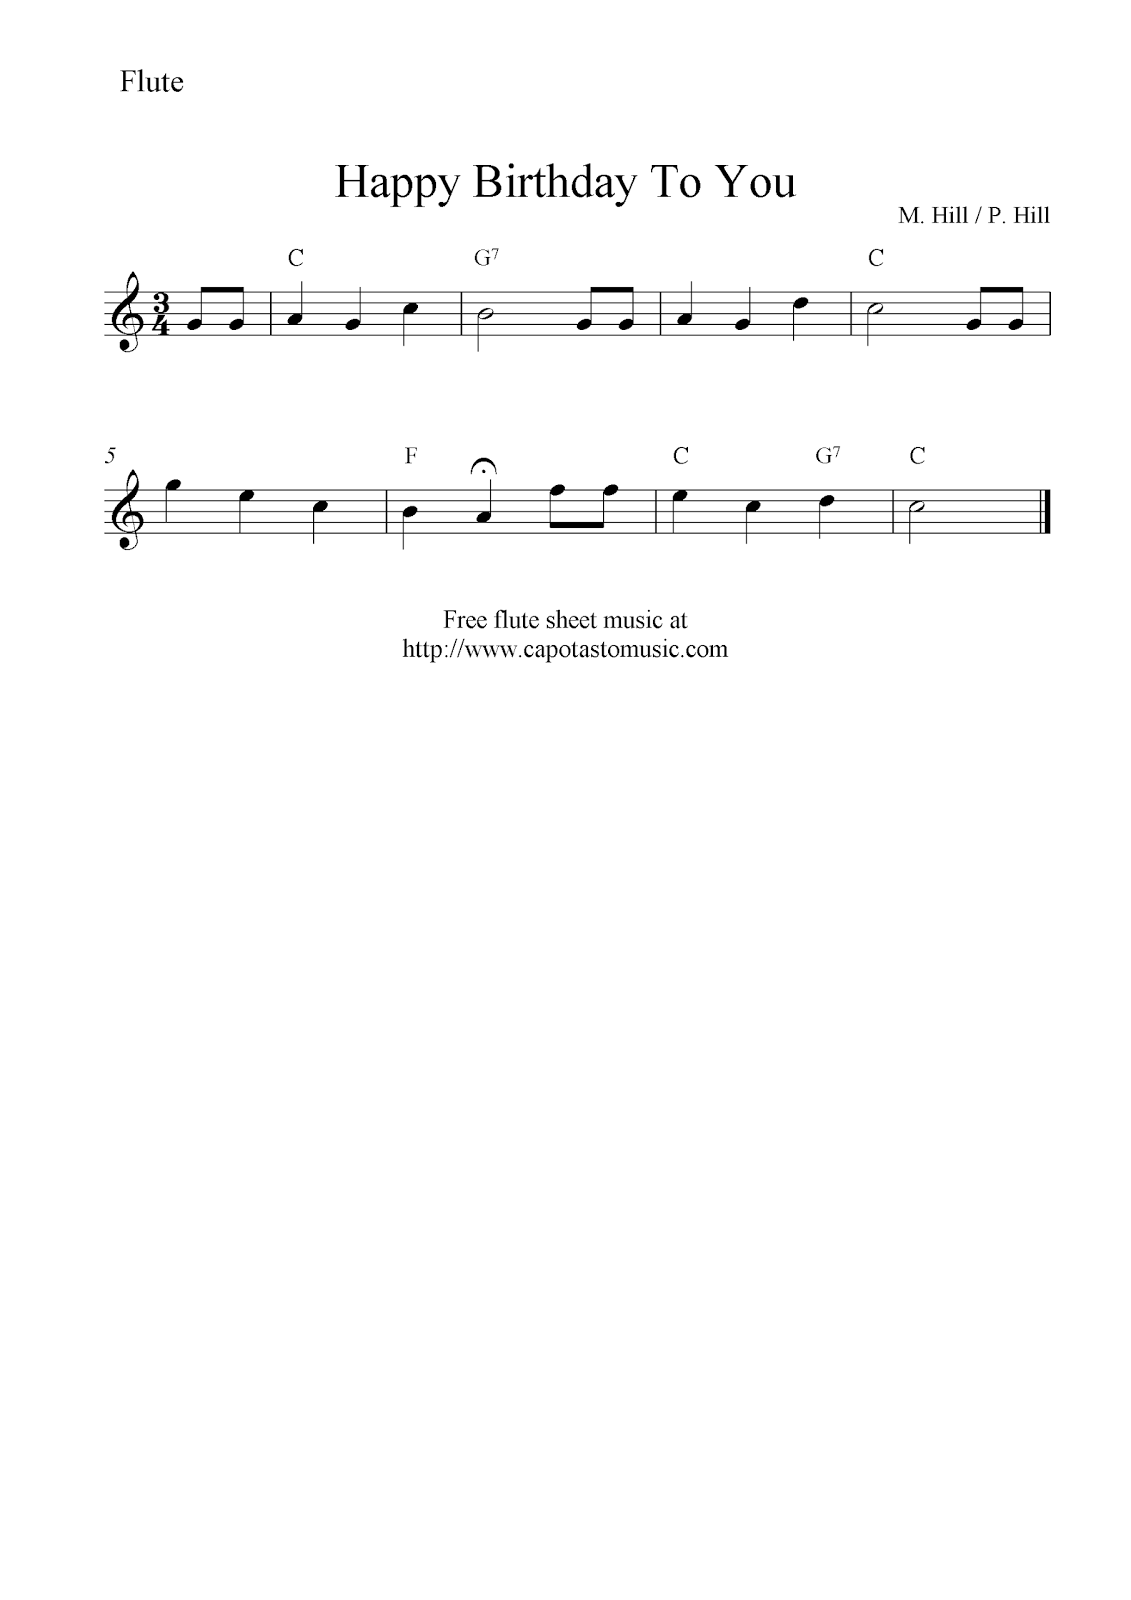 Happy birthday to you free flute sheet music notes